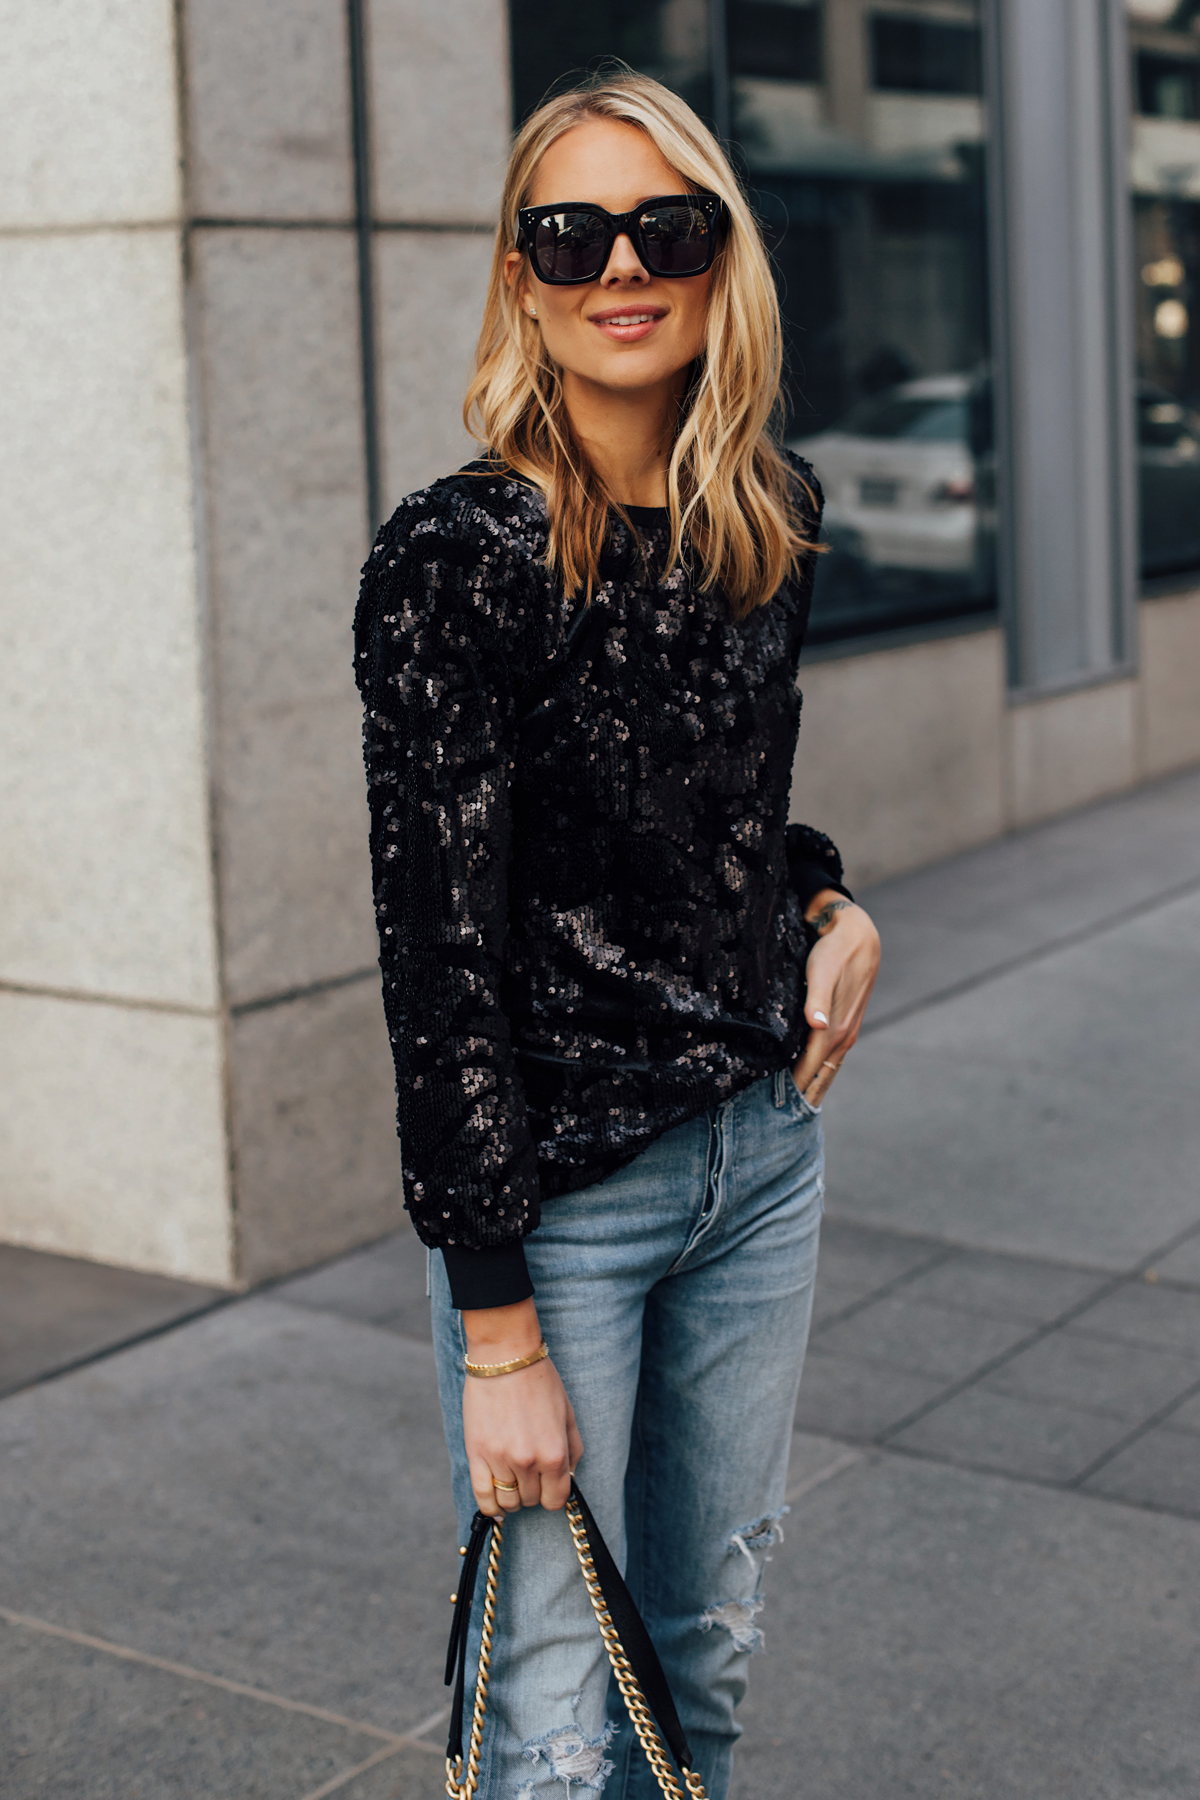 Blonde Woman Wearing Black Sequin Top Ripped Skinny Jeans Black Celine Tilda Sunglasses Fashion Jackson San Diego Fashion Blogger Street Style NYE Outfit